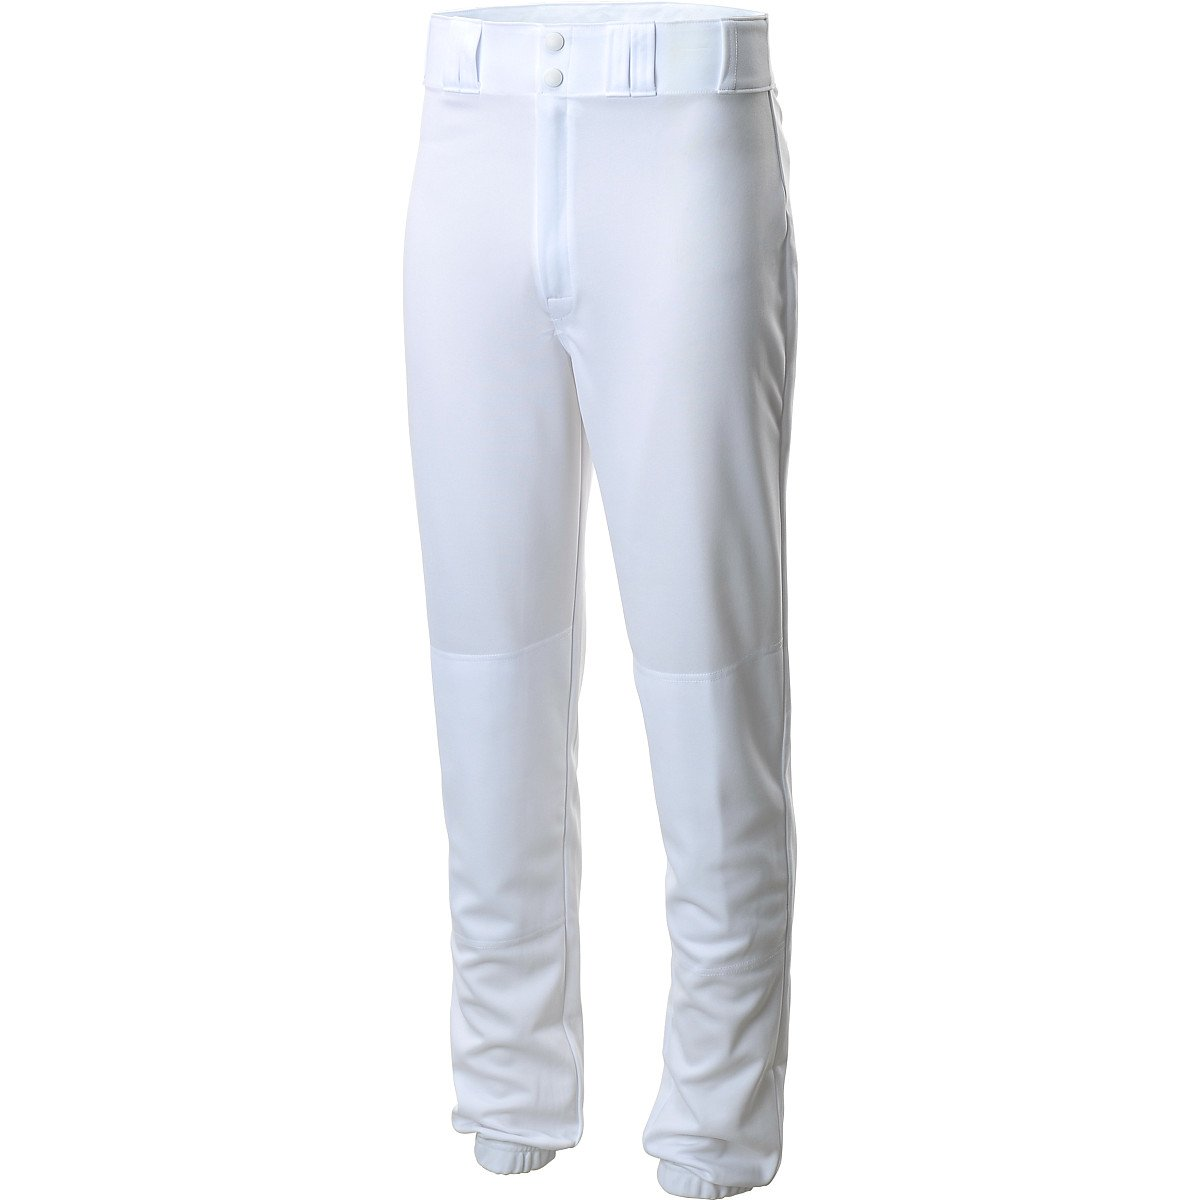 Easton Deluxe Adult Baseball Pant, White (XL/Extra Large)